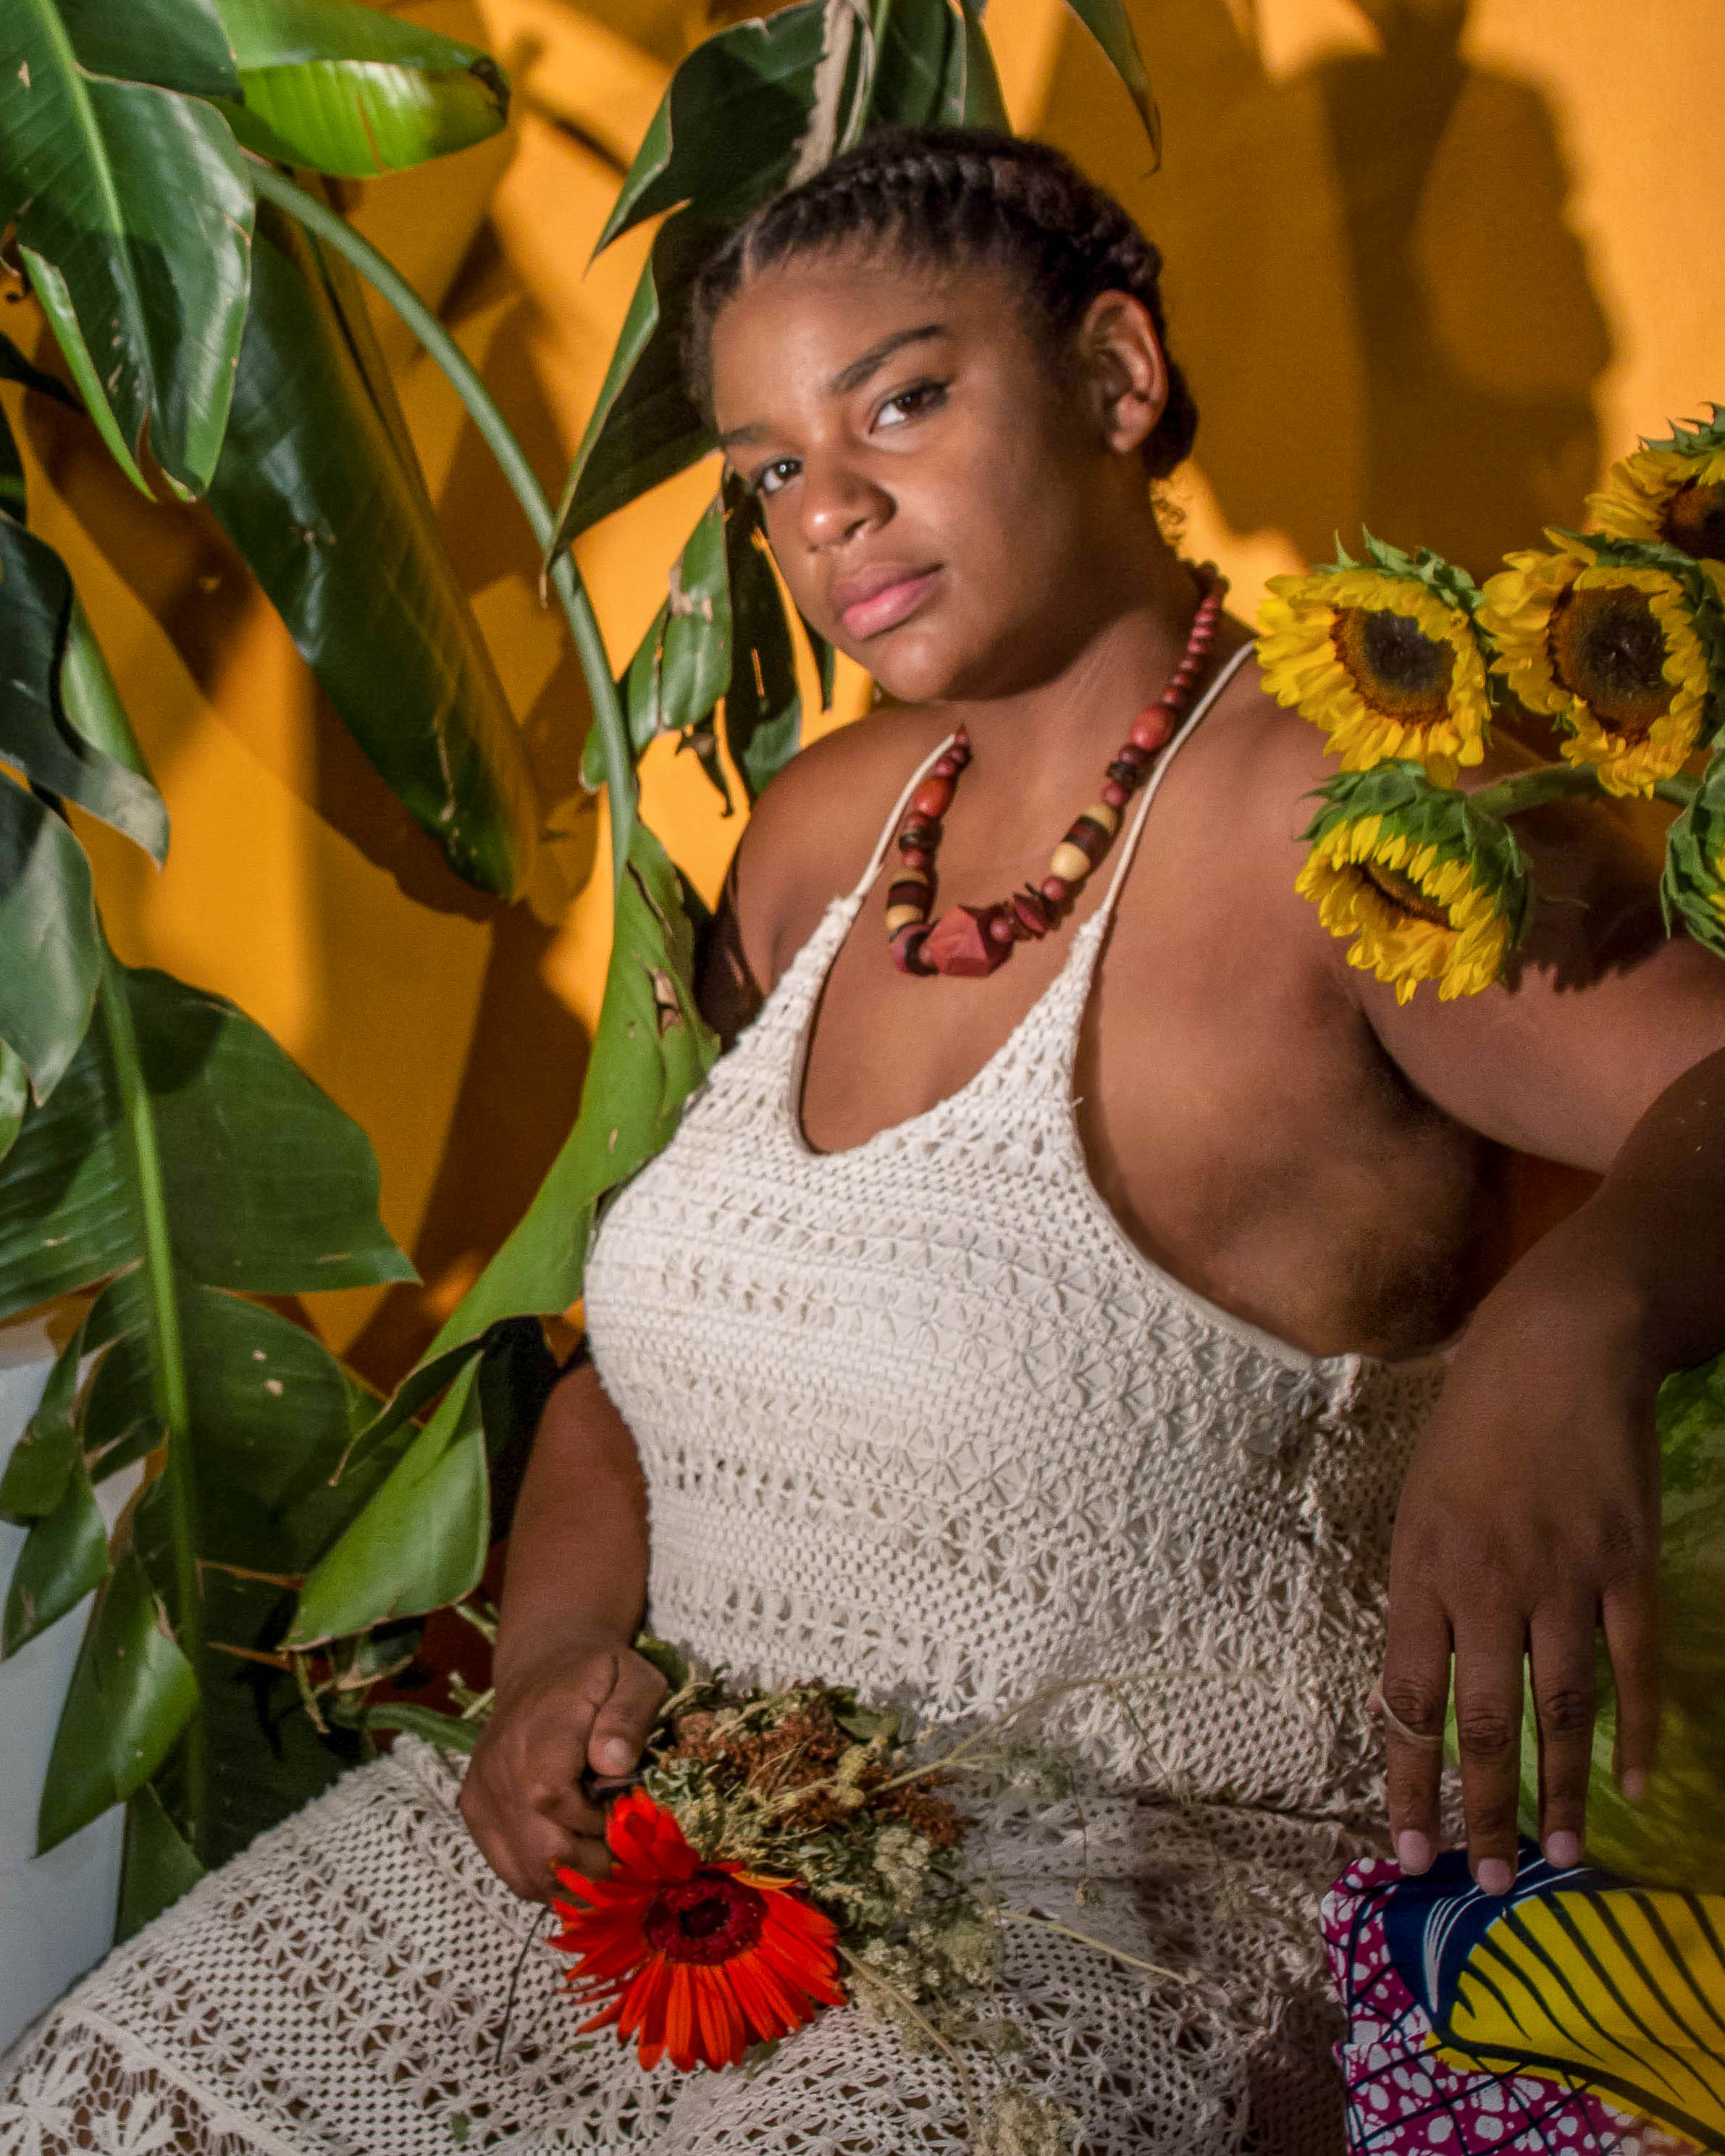 TELL THE TRUTH ABOUT ME: THE RATED PG BLACK ARTS FESTIVAL - Bmore Art